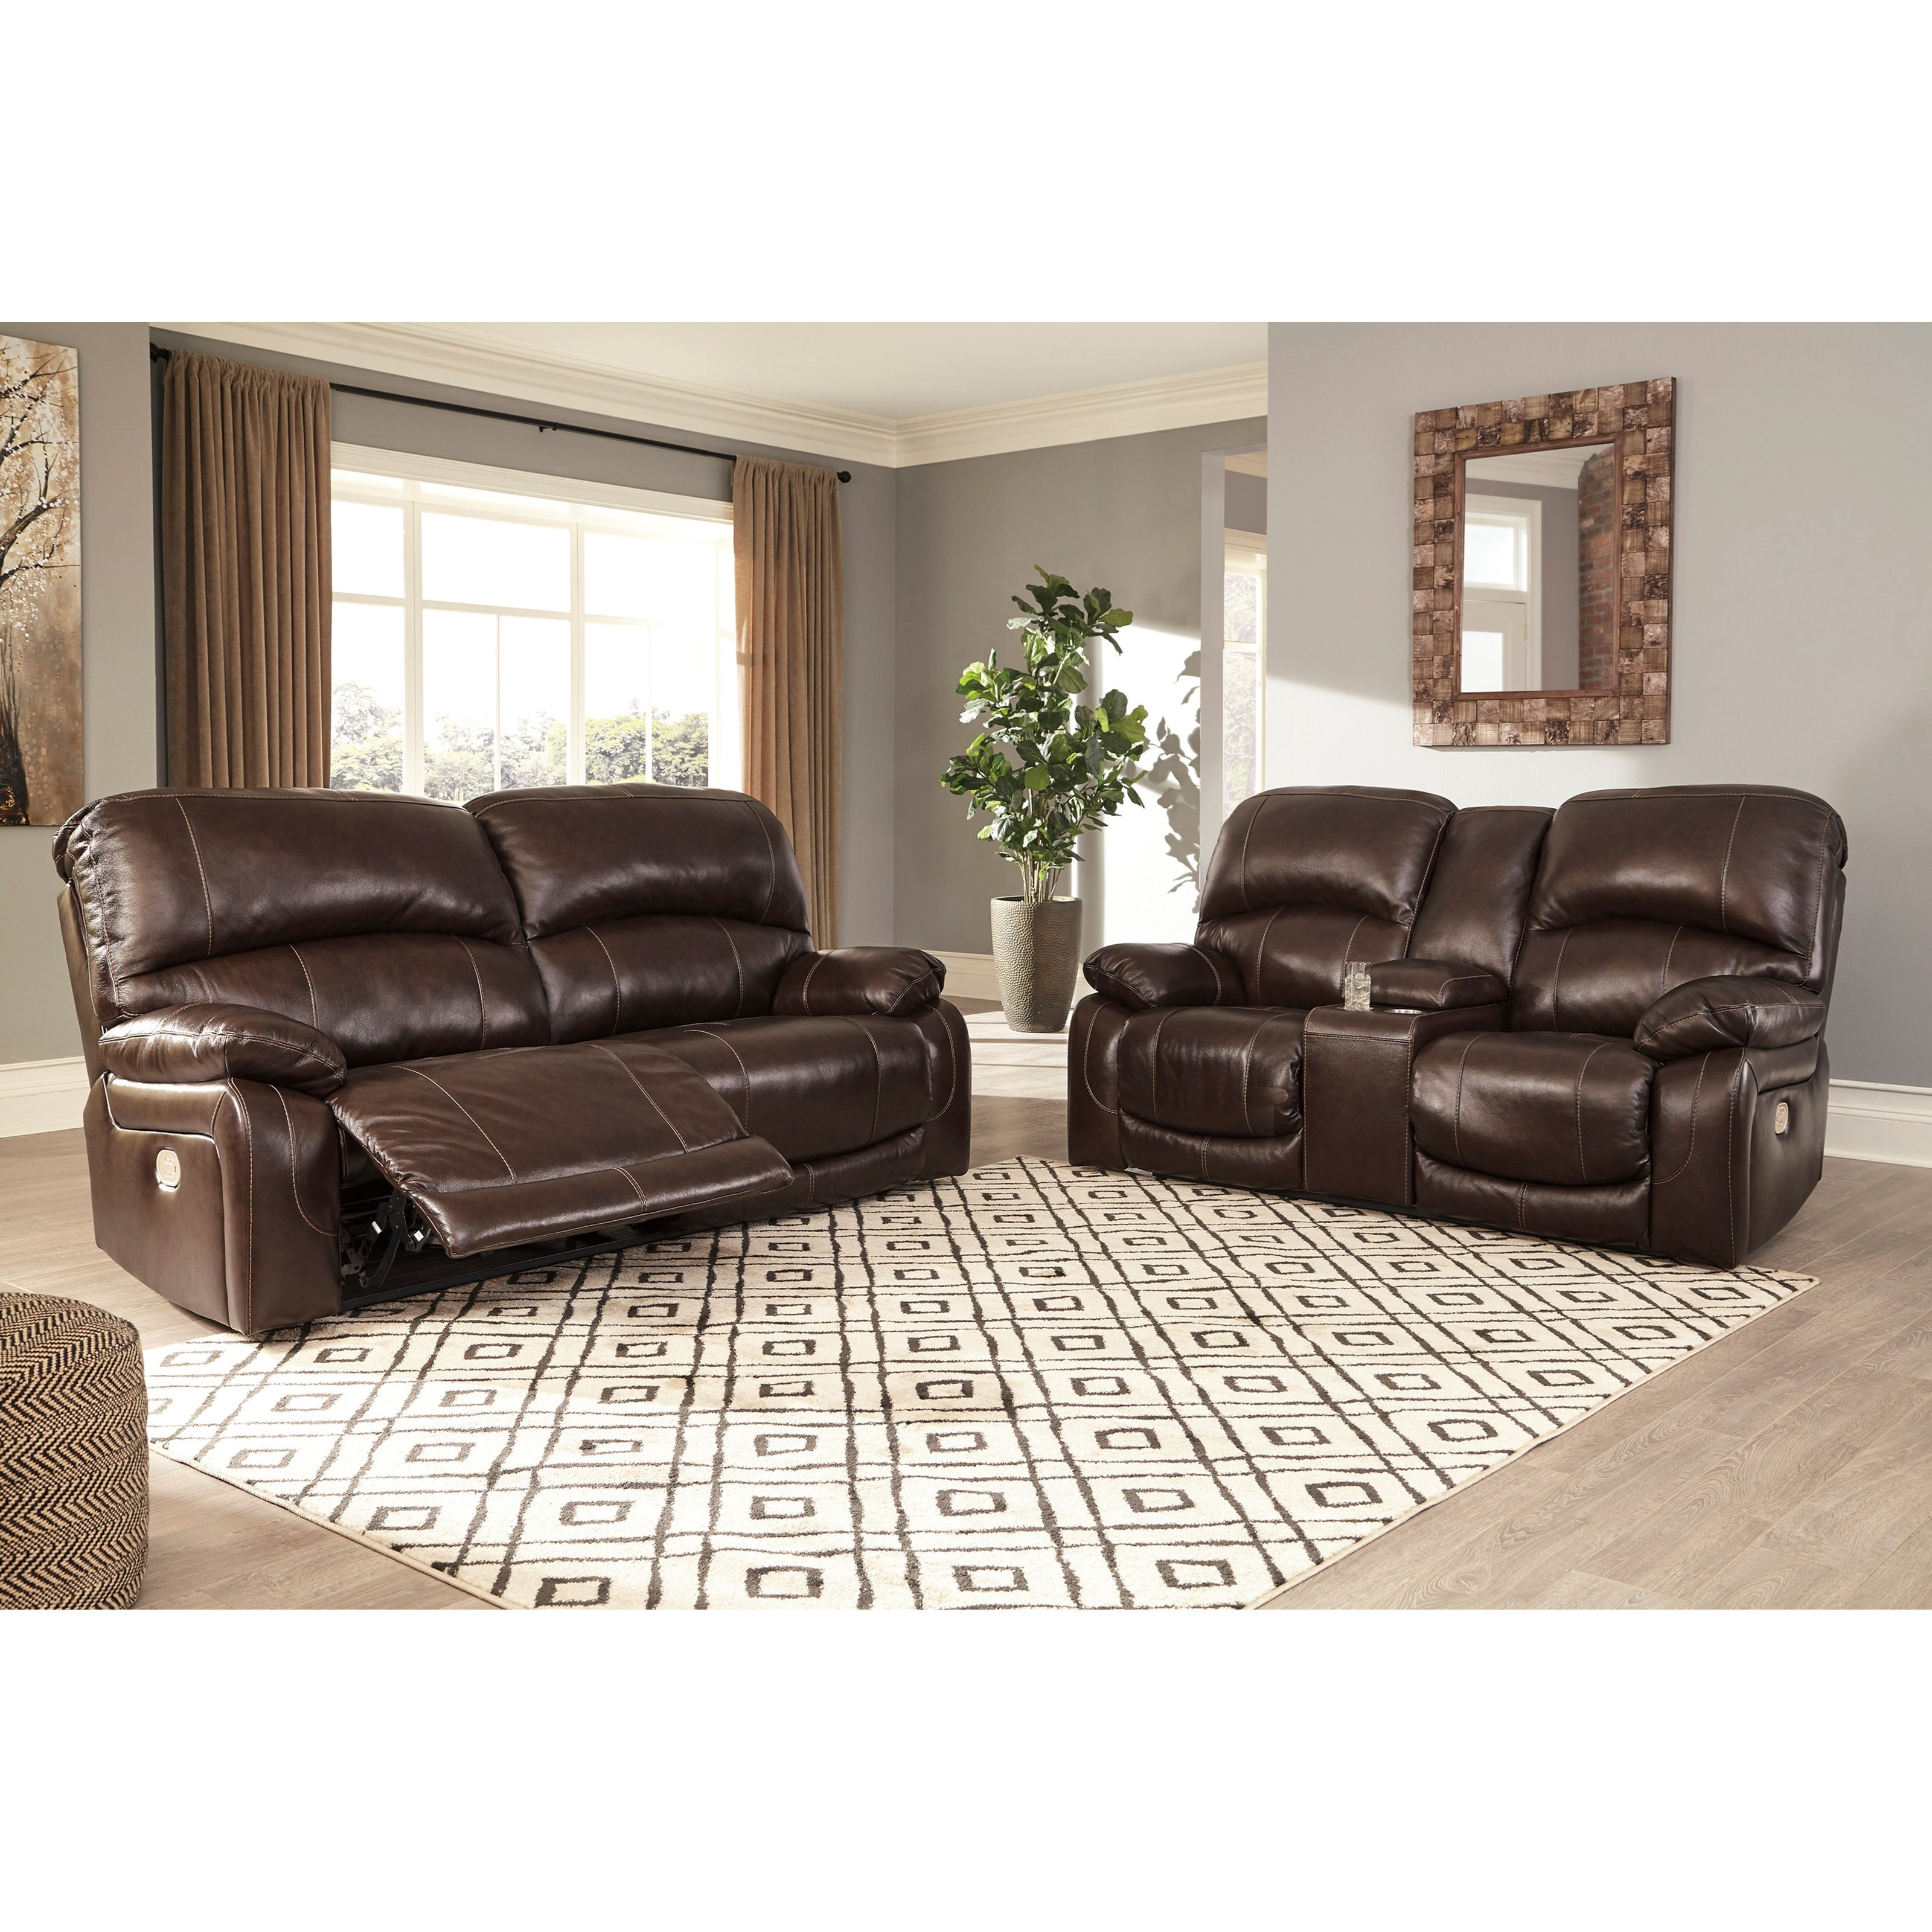 Hallstrung Power Reclining Living Room Group by Ashley (Signature Design) at Johnny Janosik